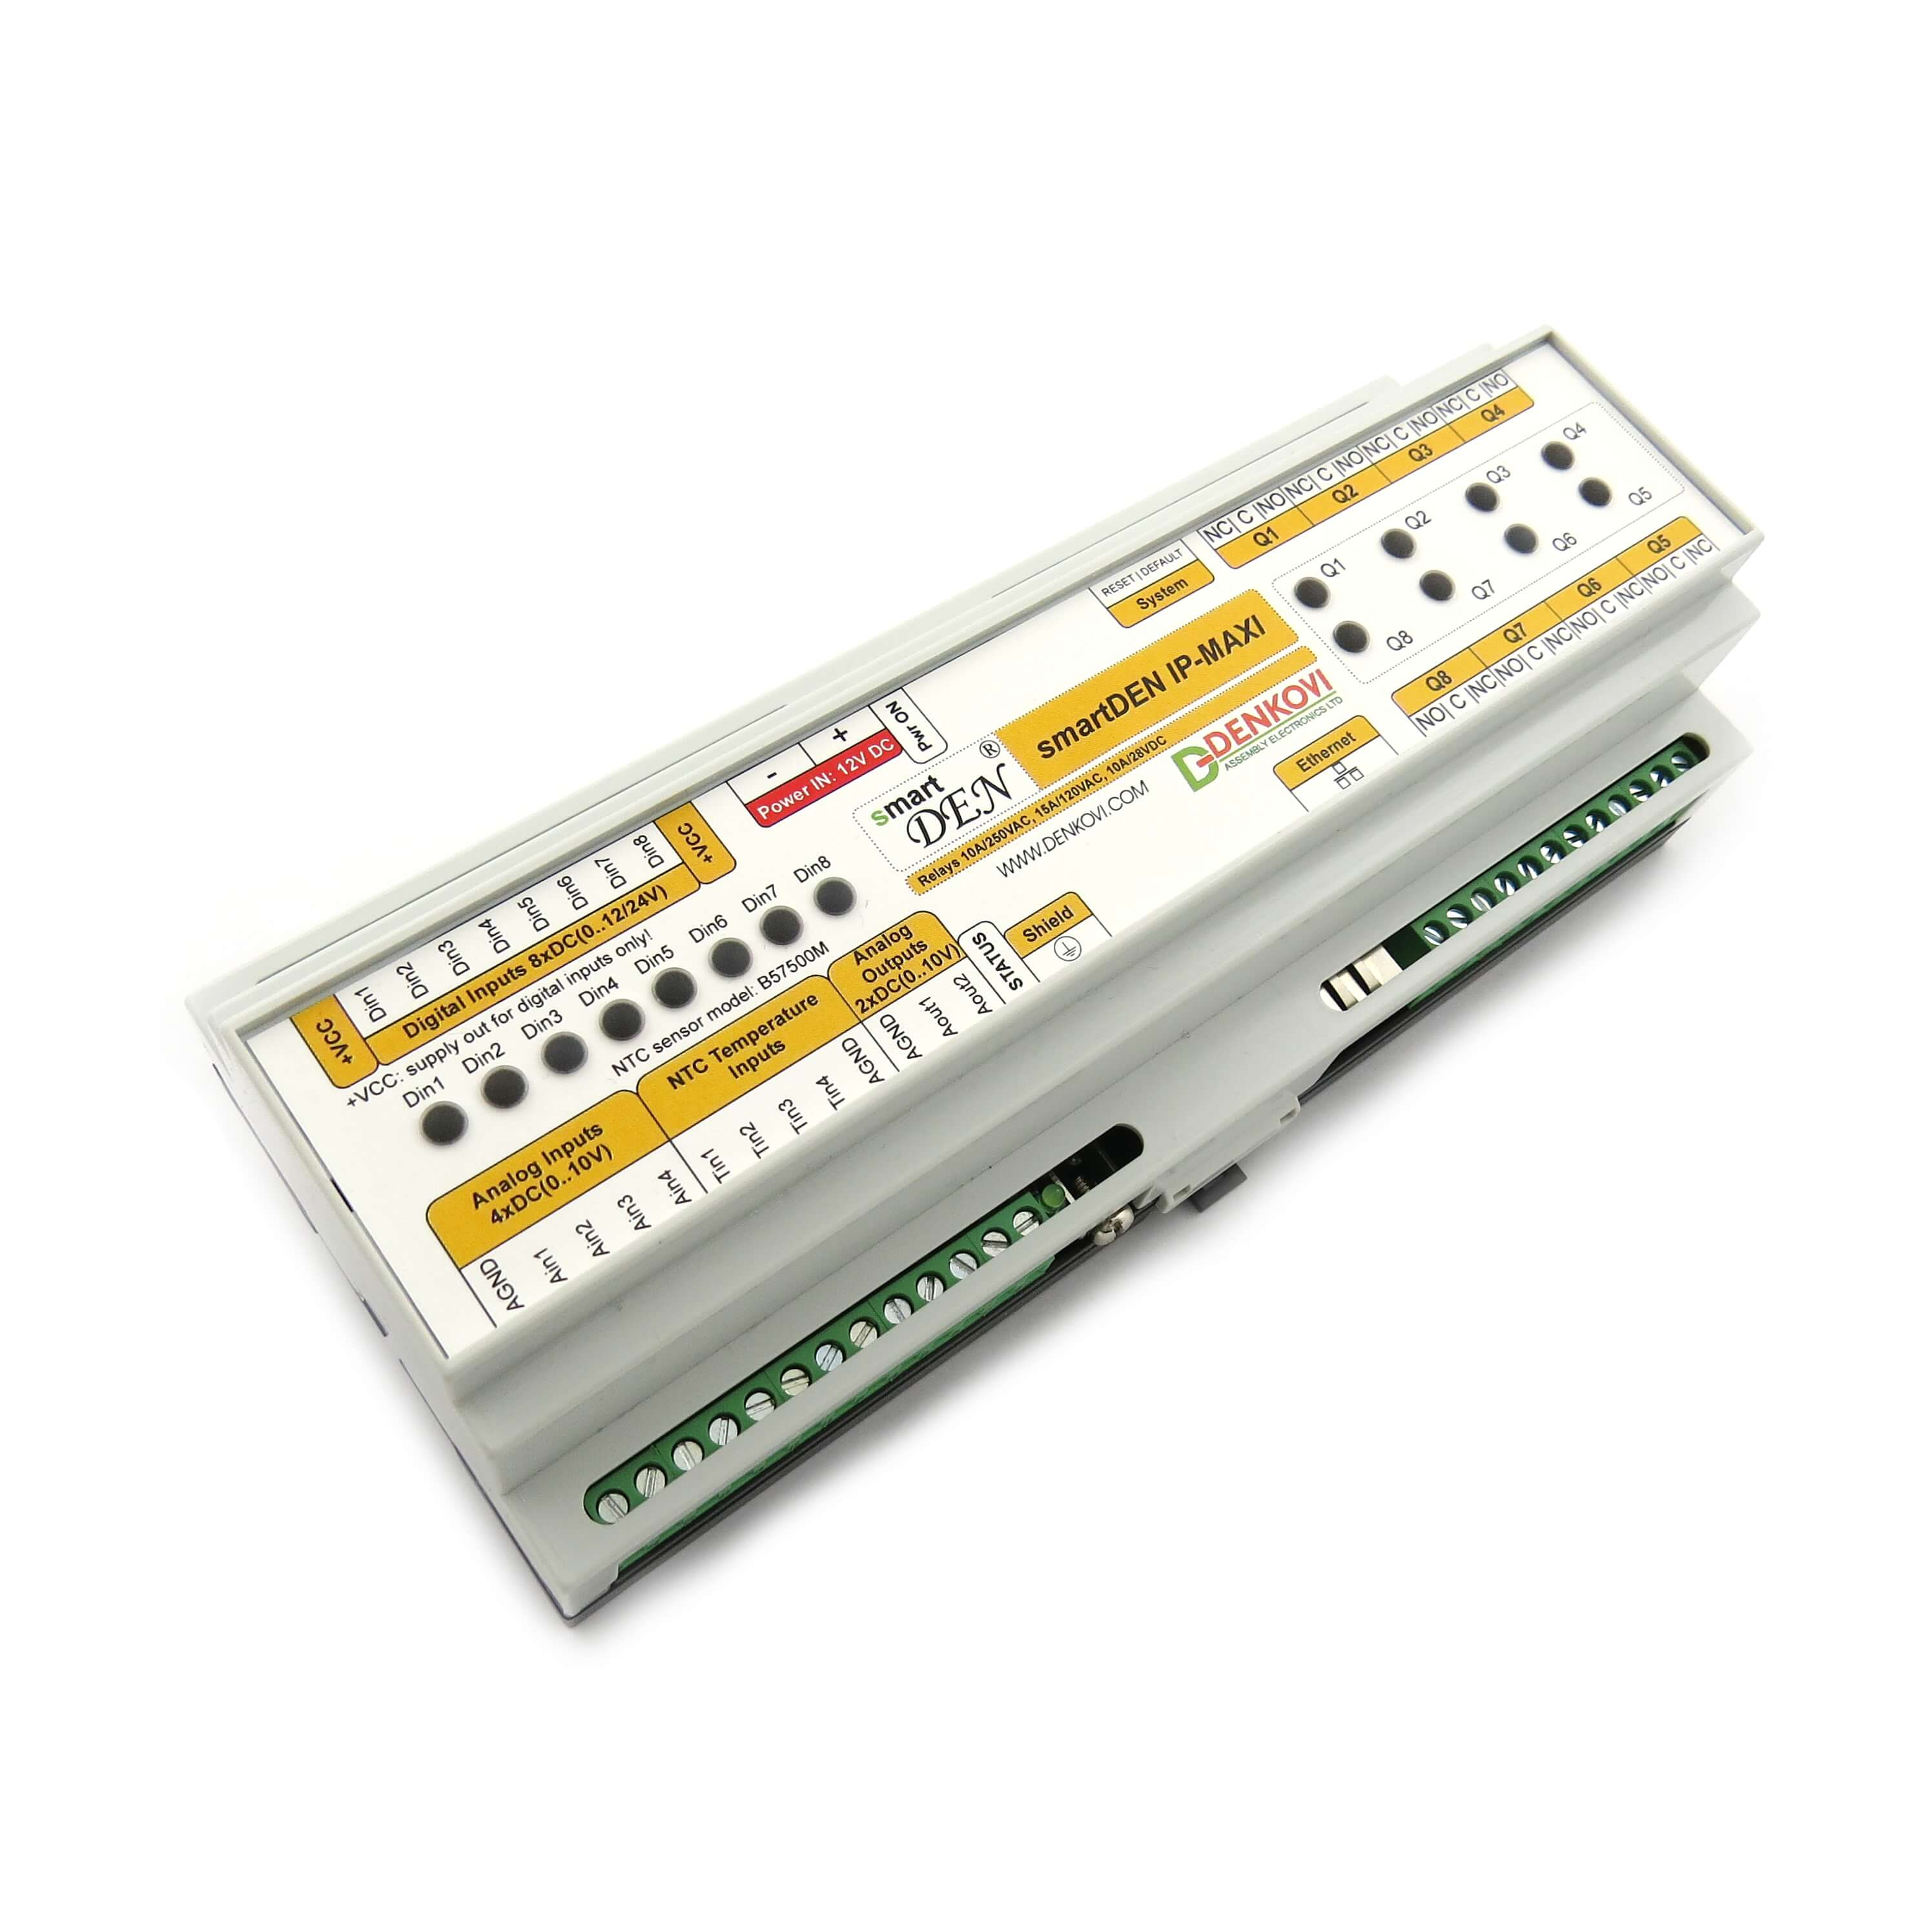 Details about Ethernet Relay controller module - WEB server IP and  Analog/Temperature Inputs